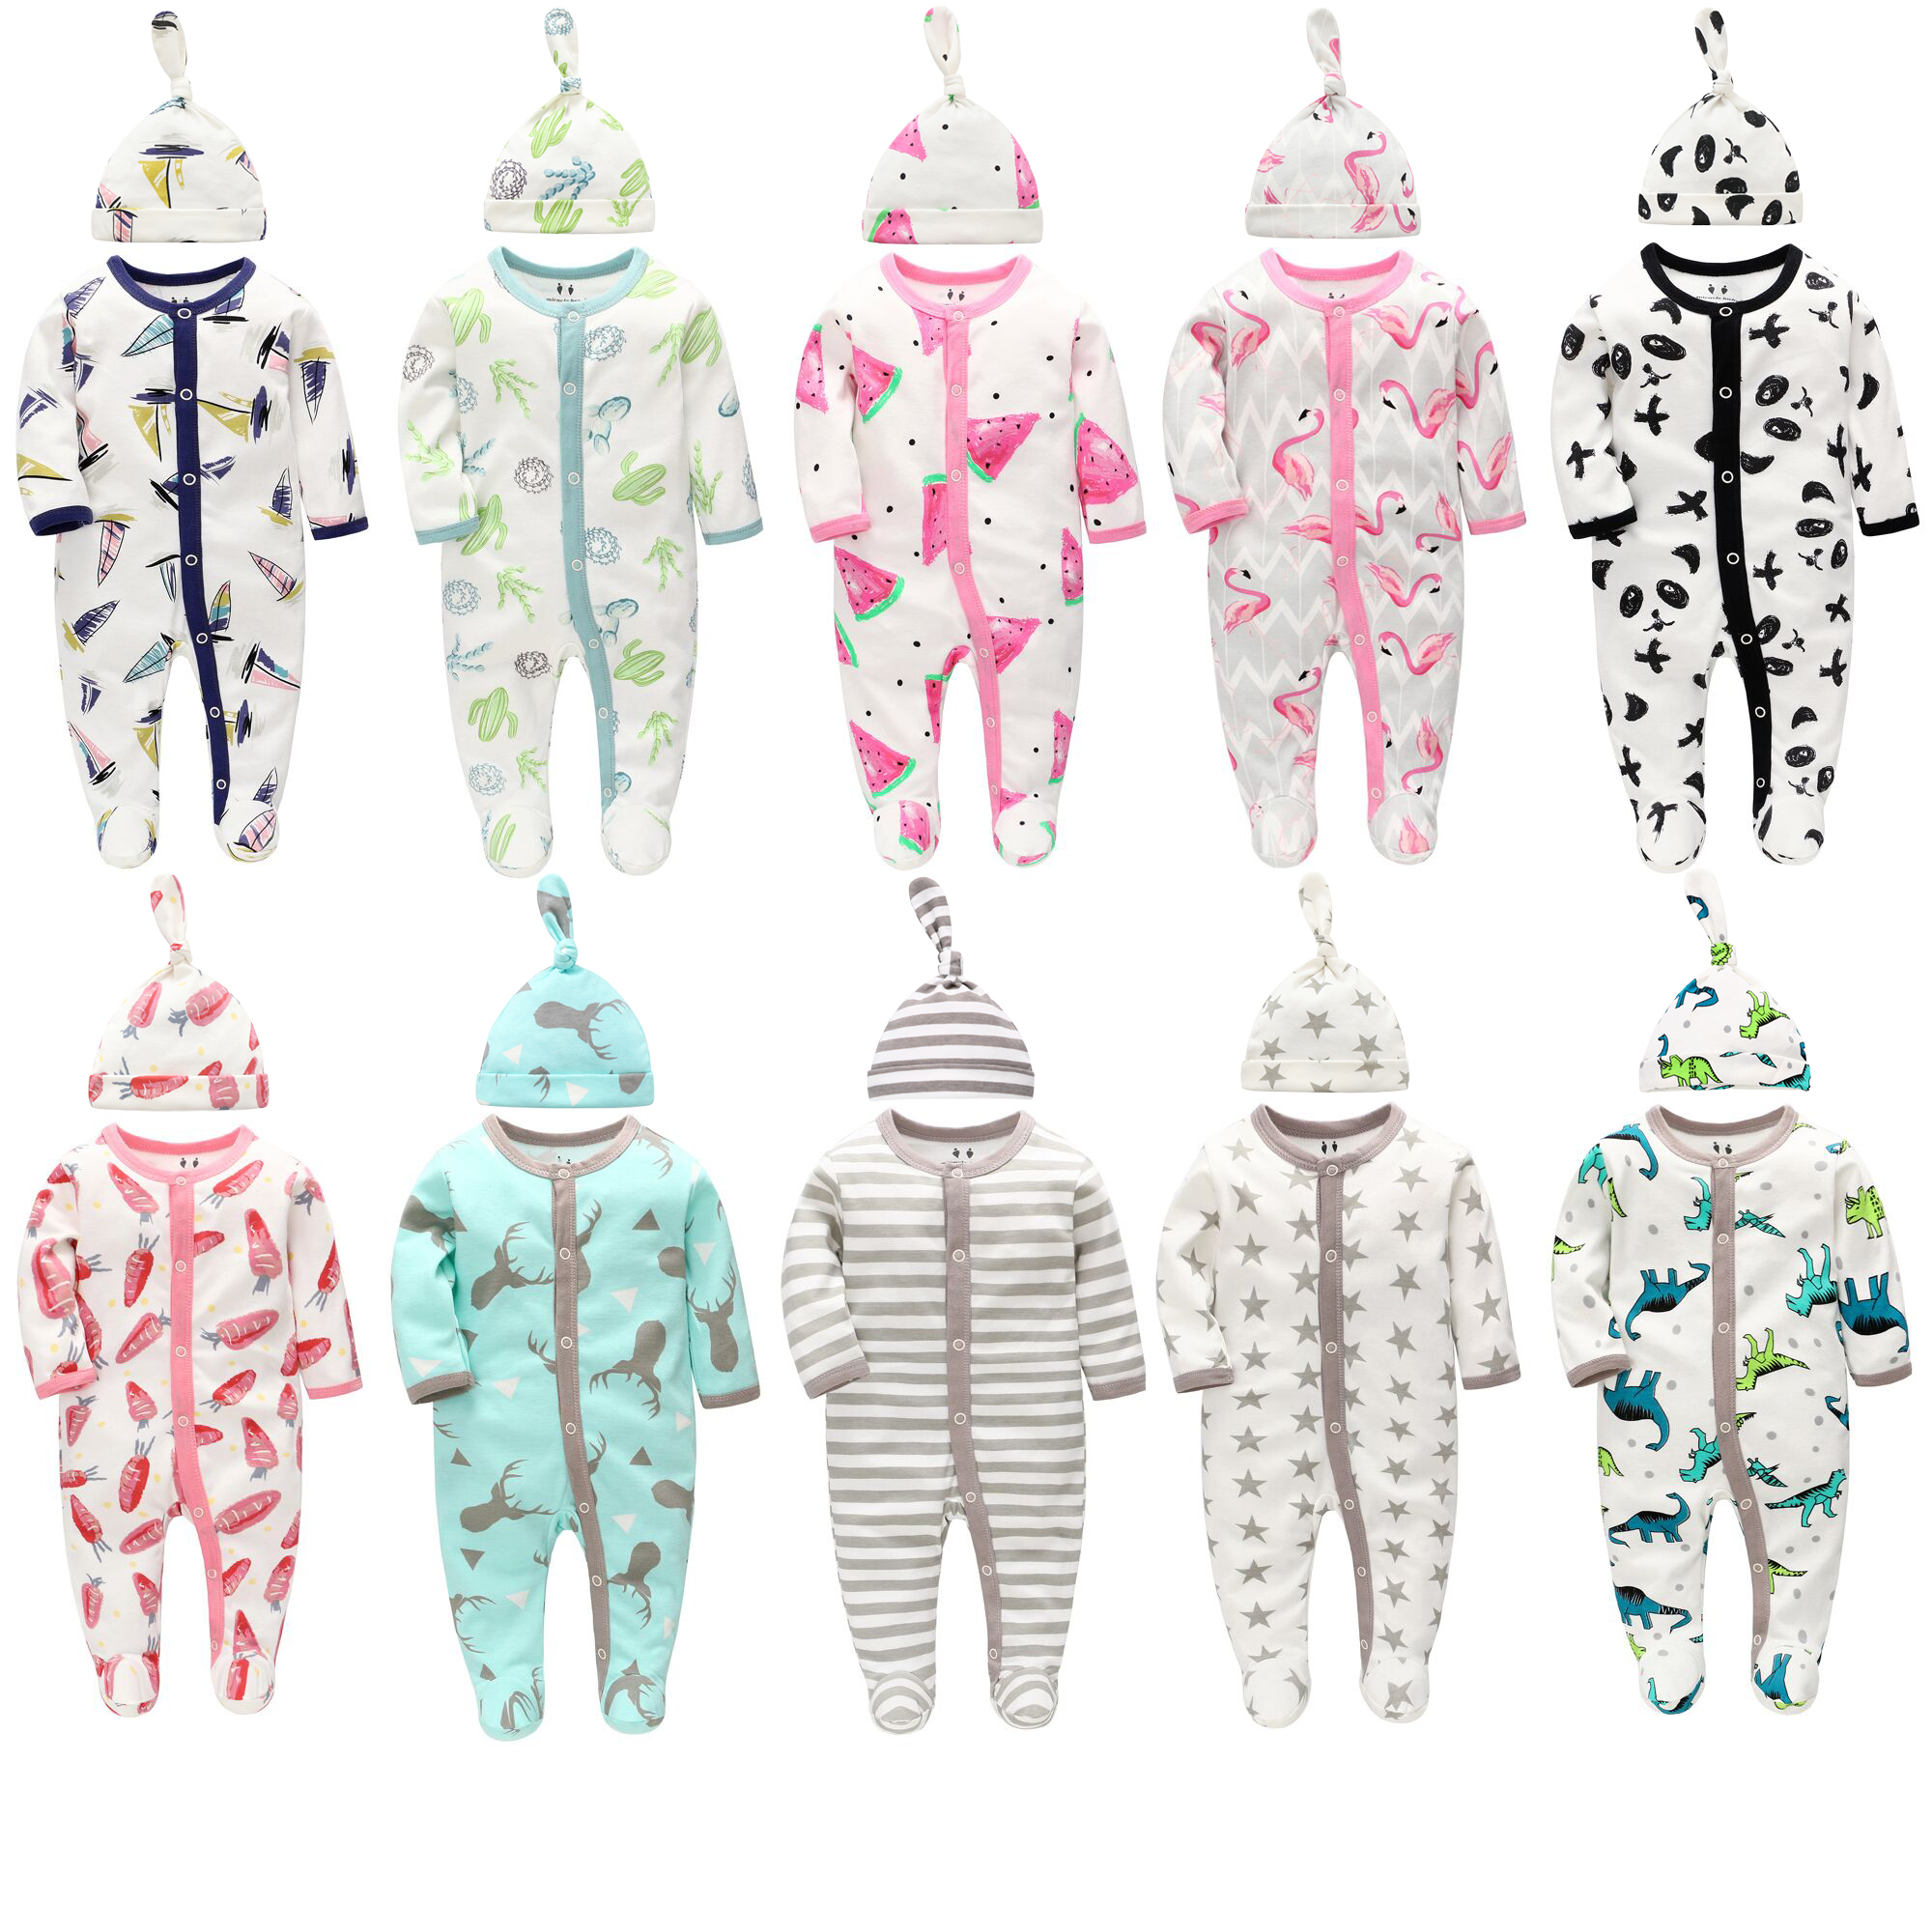 Factory Wholesale Baby Clothes with Hat 100% Cotton Newborn Infant Romper Set Pajamas Baby Rompers Clothes Printed Baby Clothes